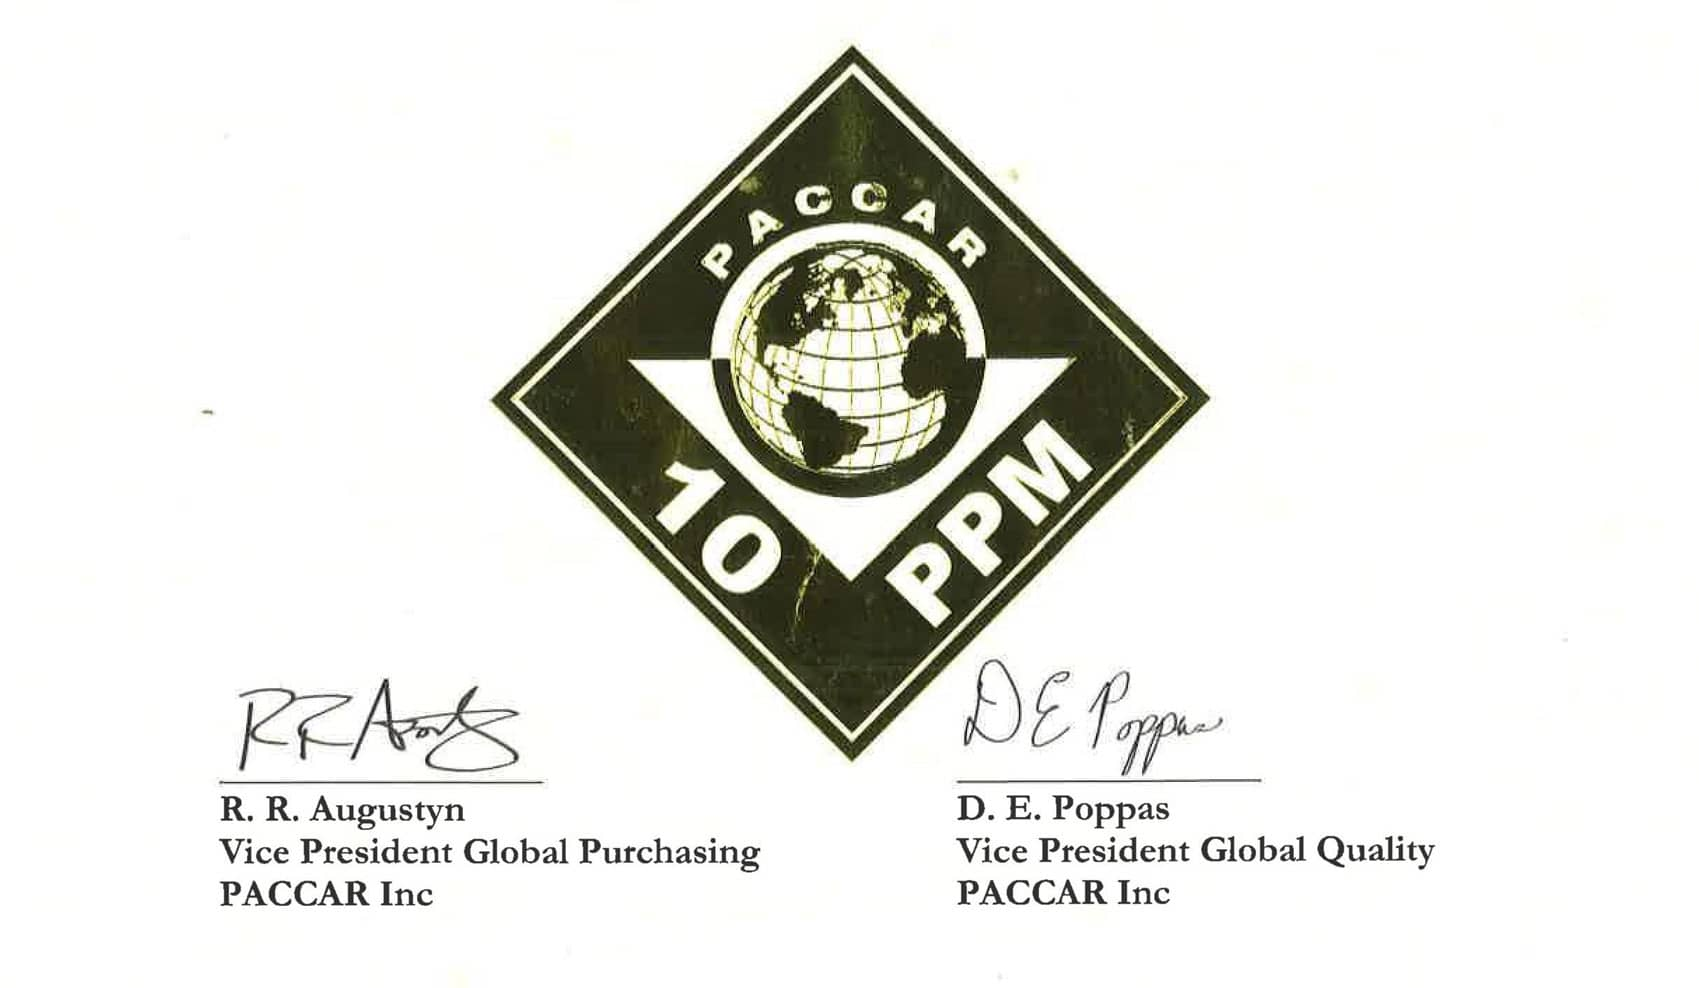 certificate for the PPM award by DAF:Paccar